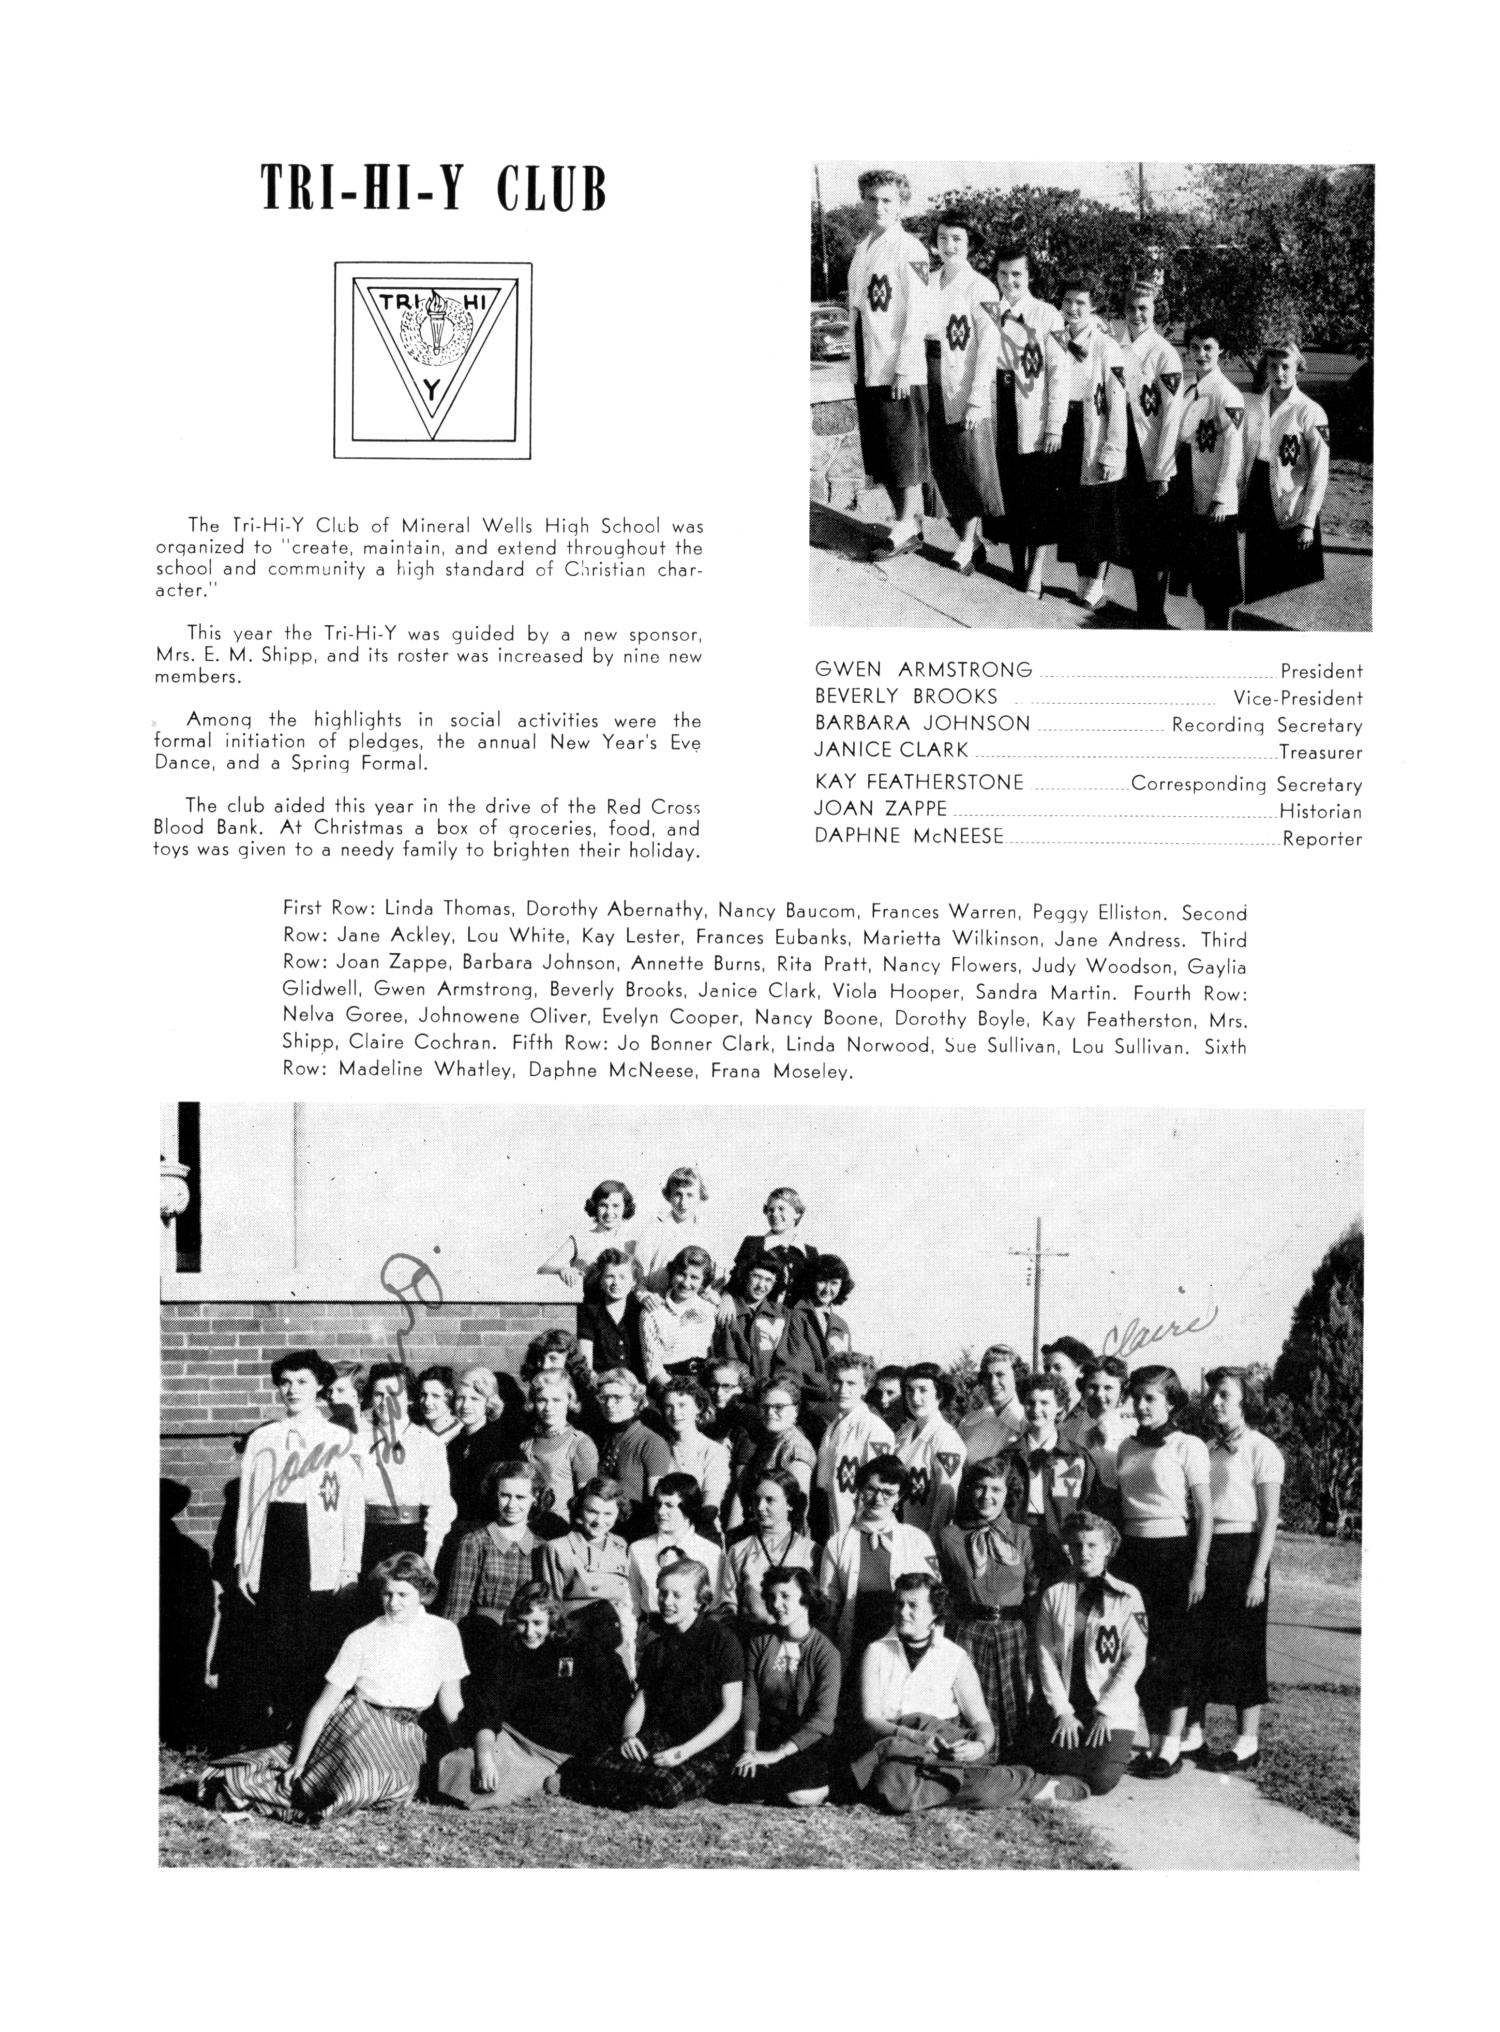 The Burro, Yearbook of Mineral Wells High School, 1953                                                                                                      77